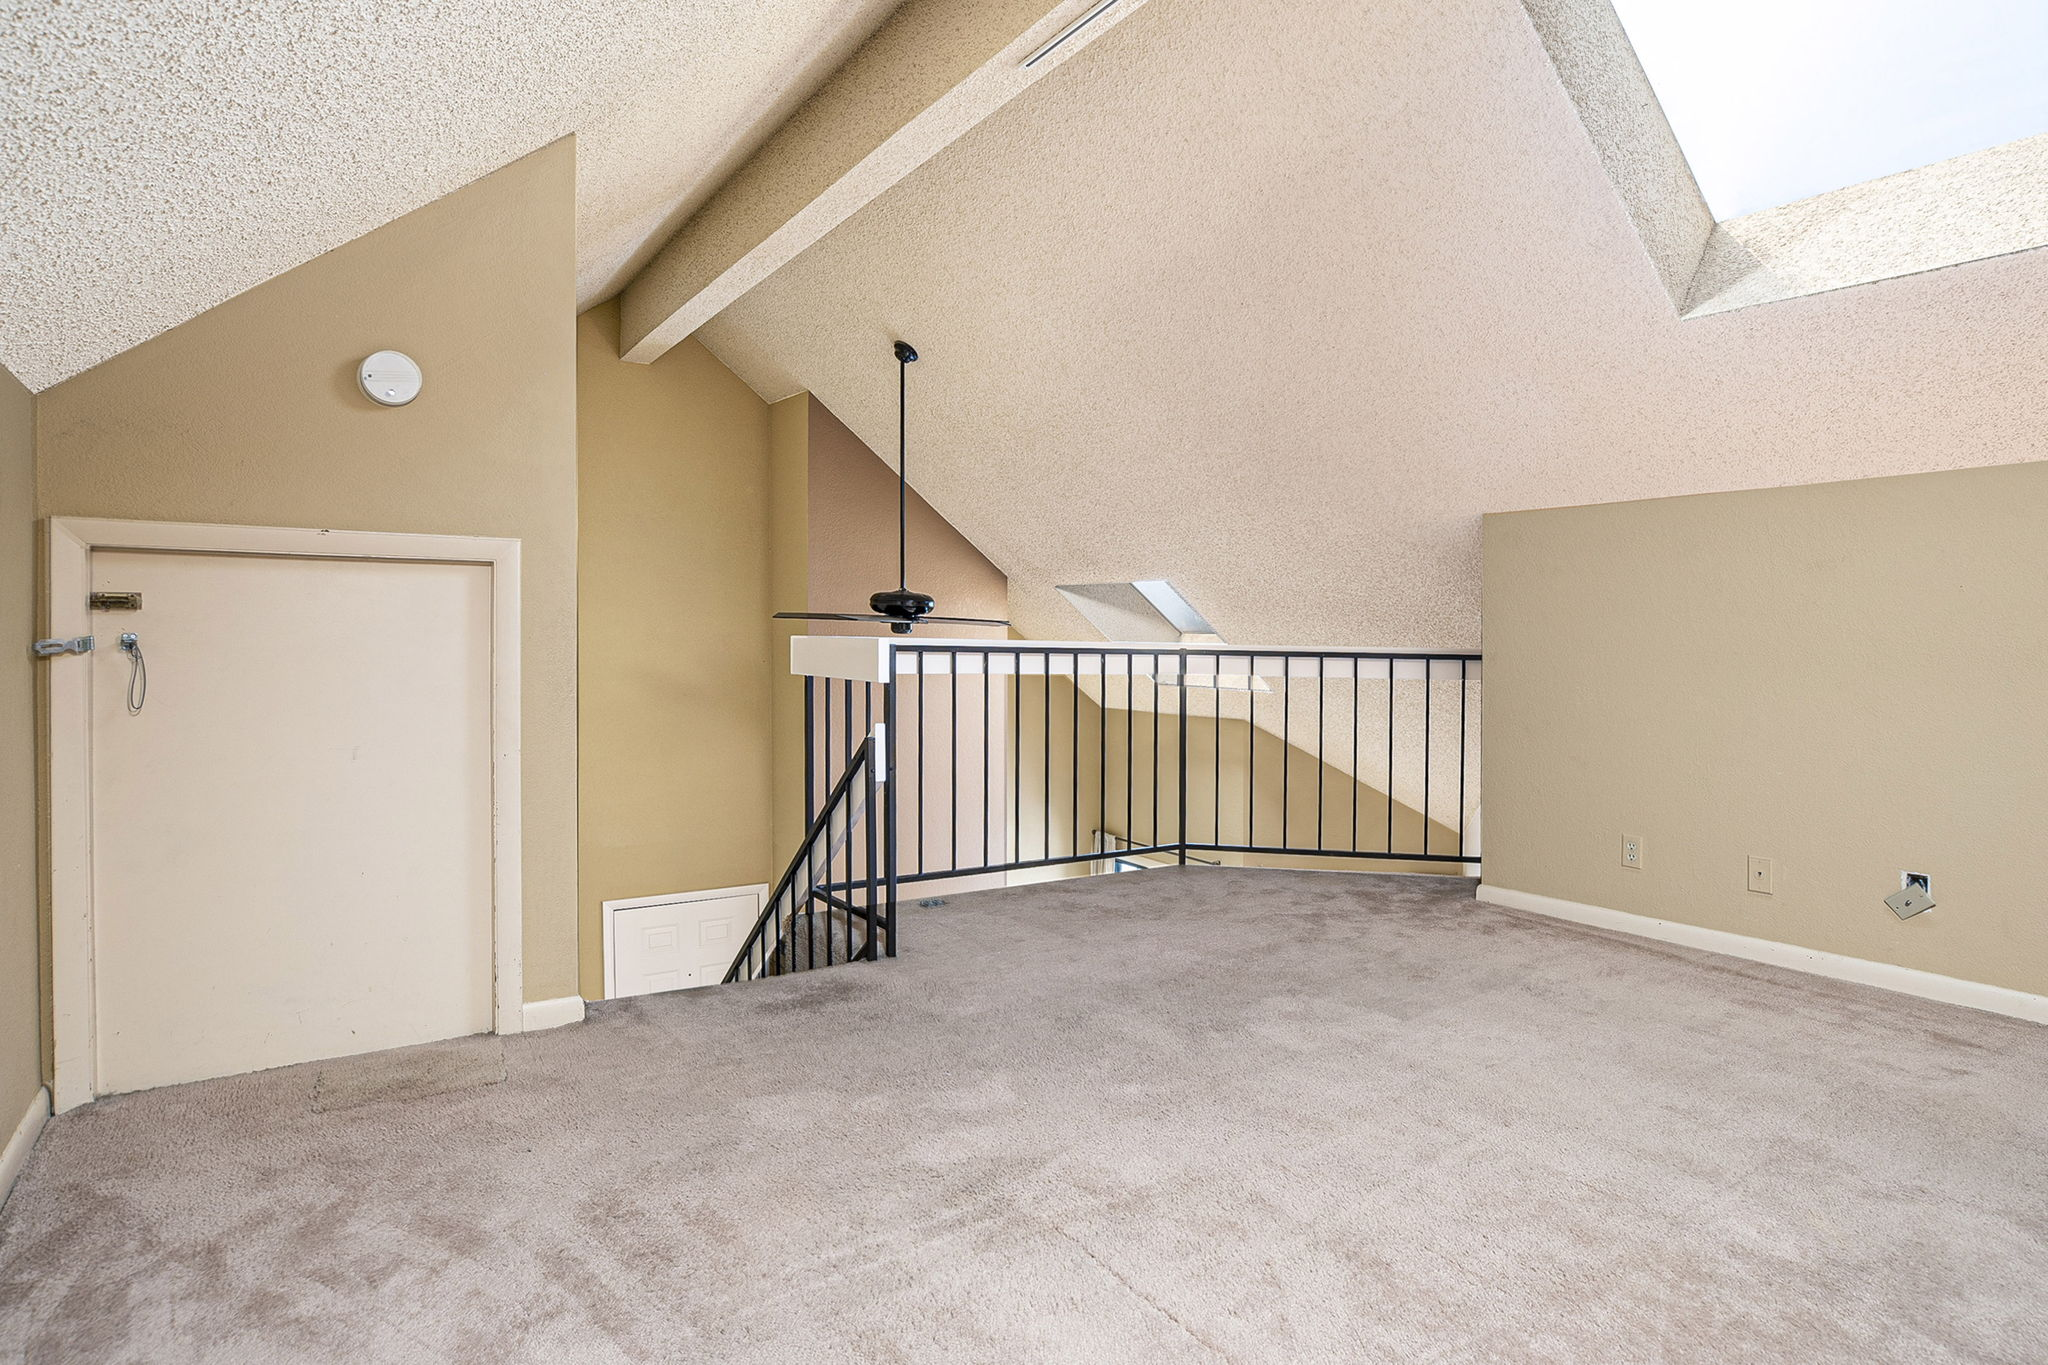 POSSIBLE 2ND BEDROOM AREA OR MEDITATION AREA